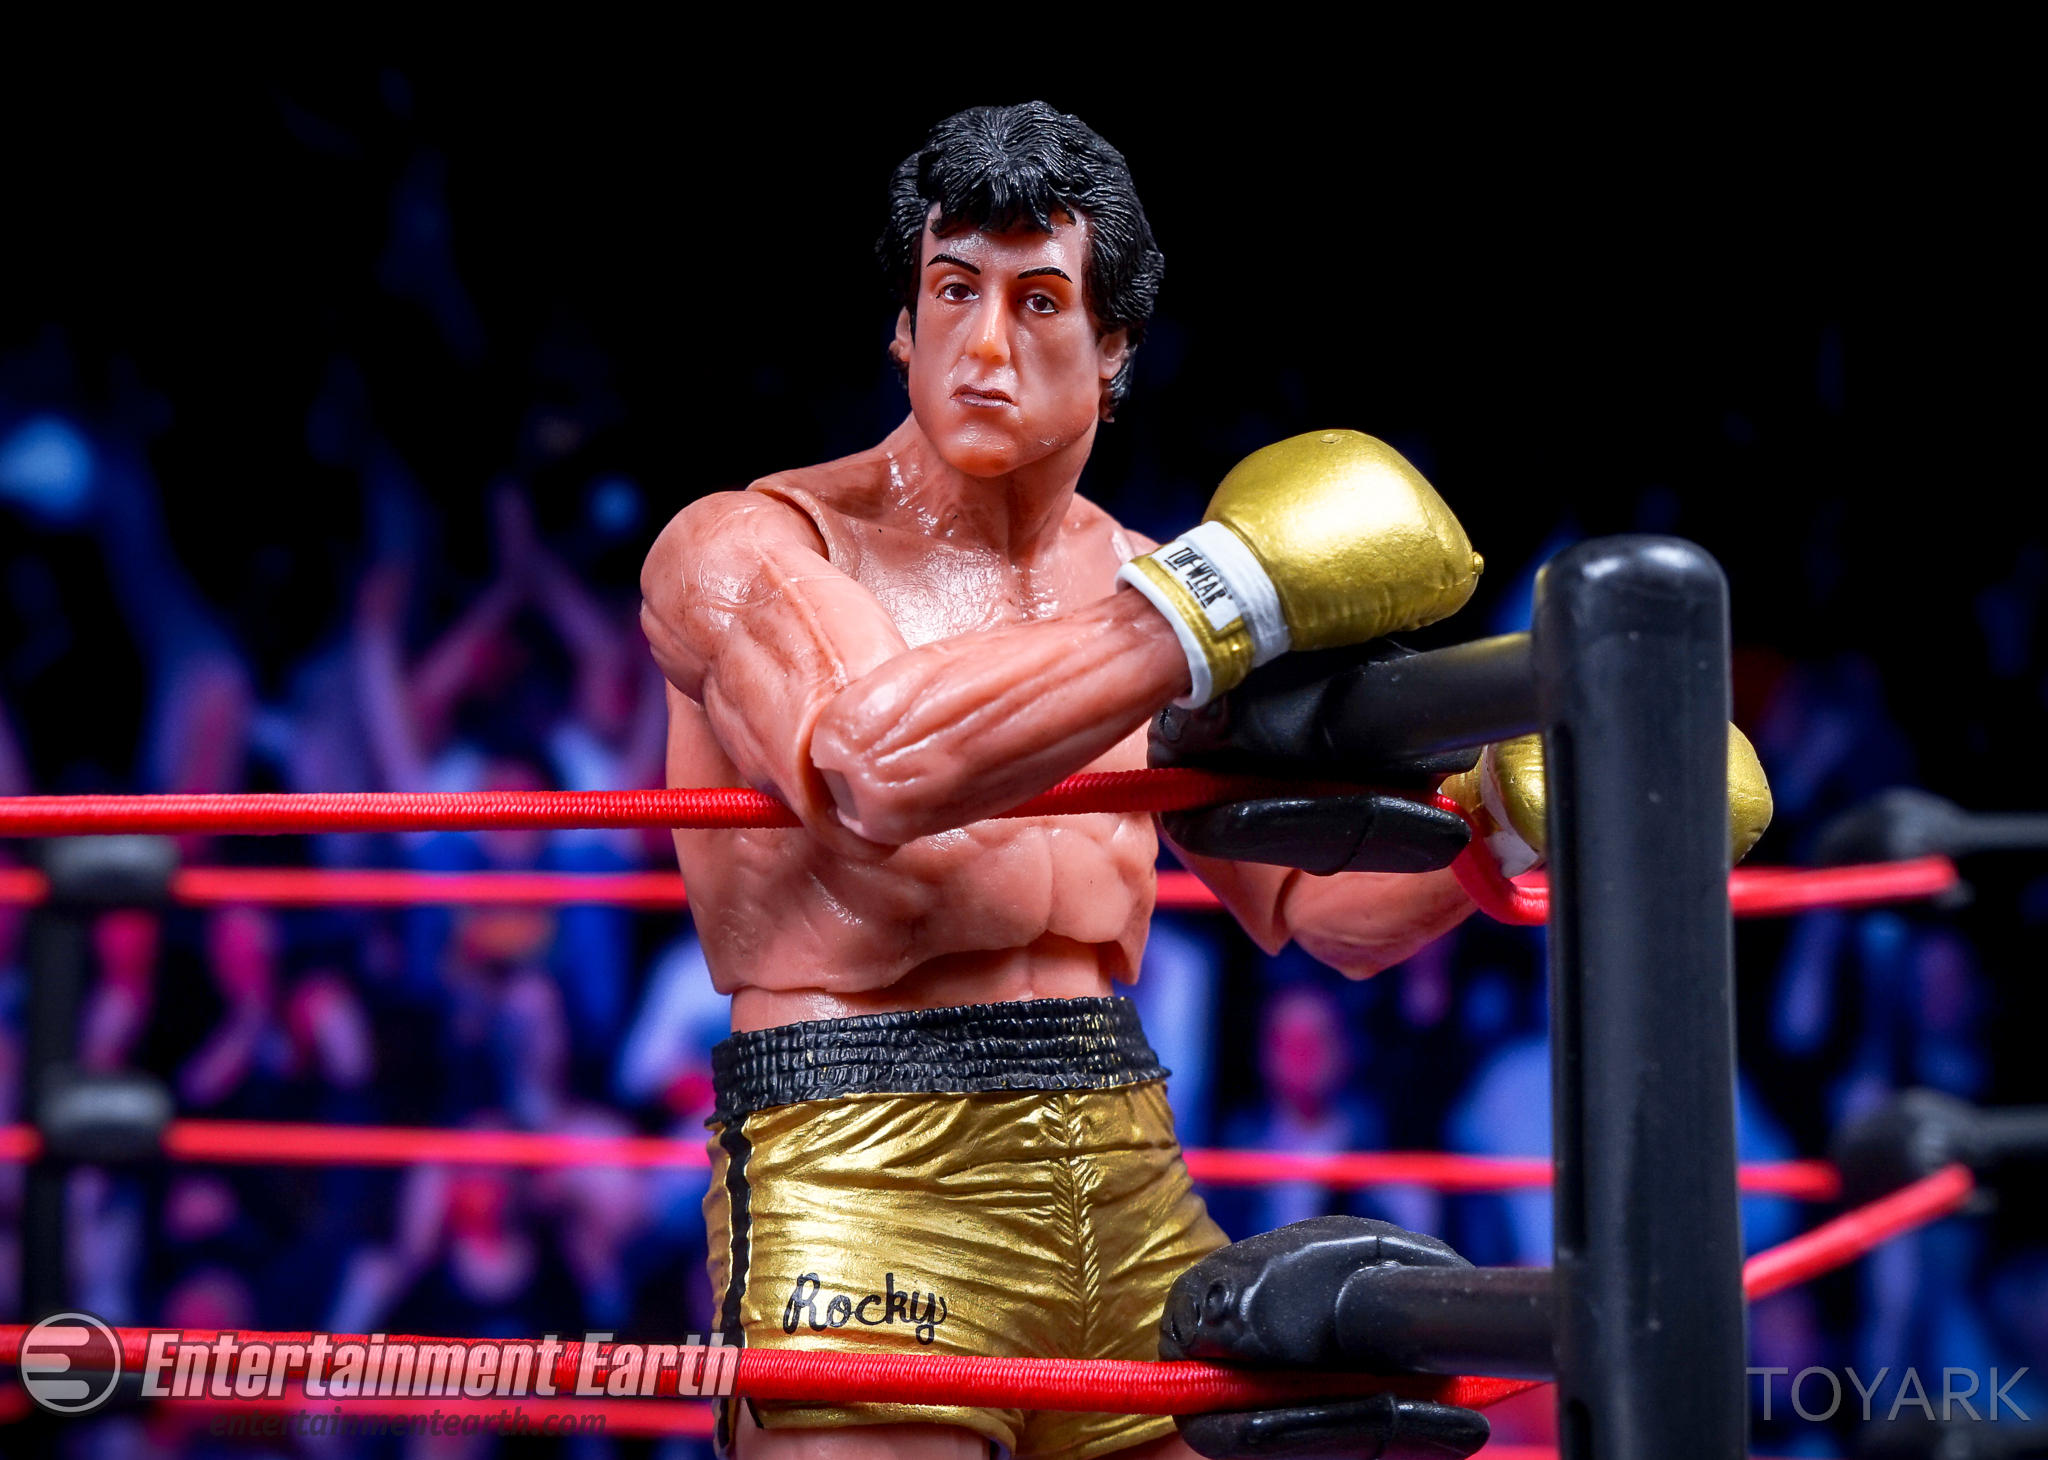 http://news.toyark.com/wp-content/uploads/sites/4/2016/06/Rocky-Series-1-NECA-066.jpg